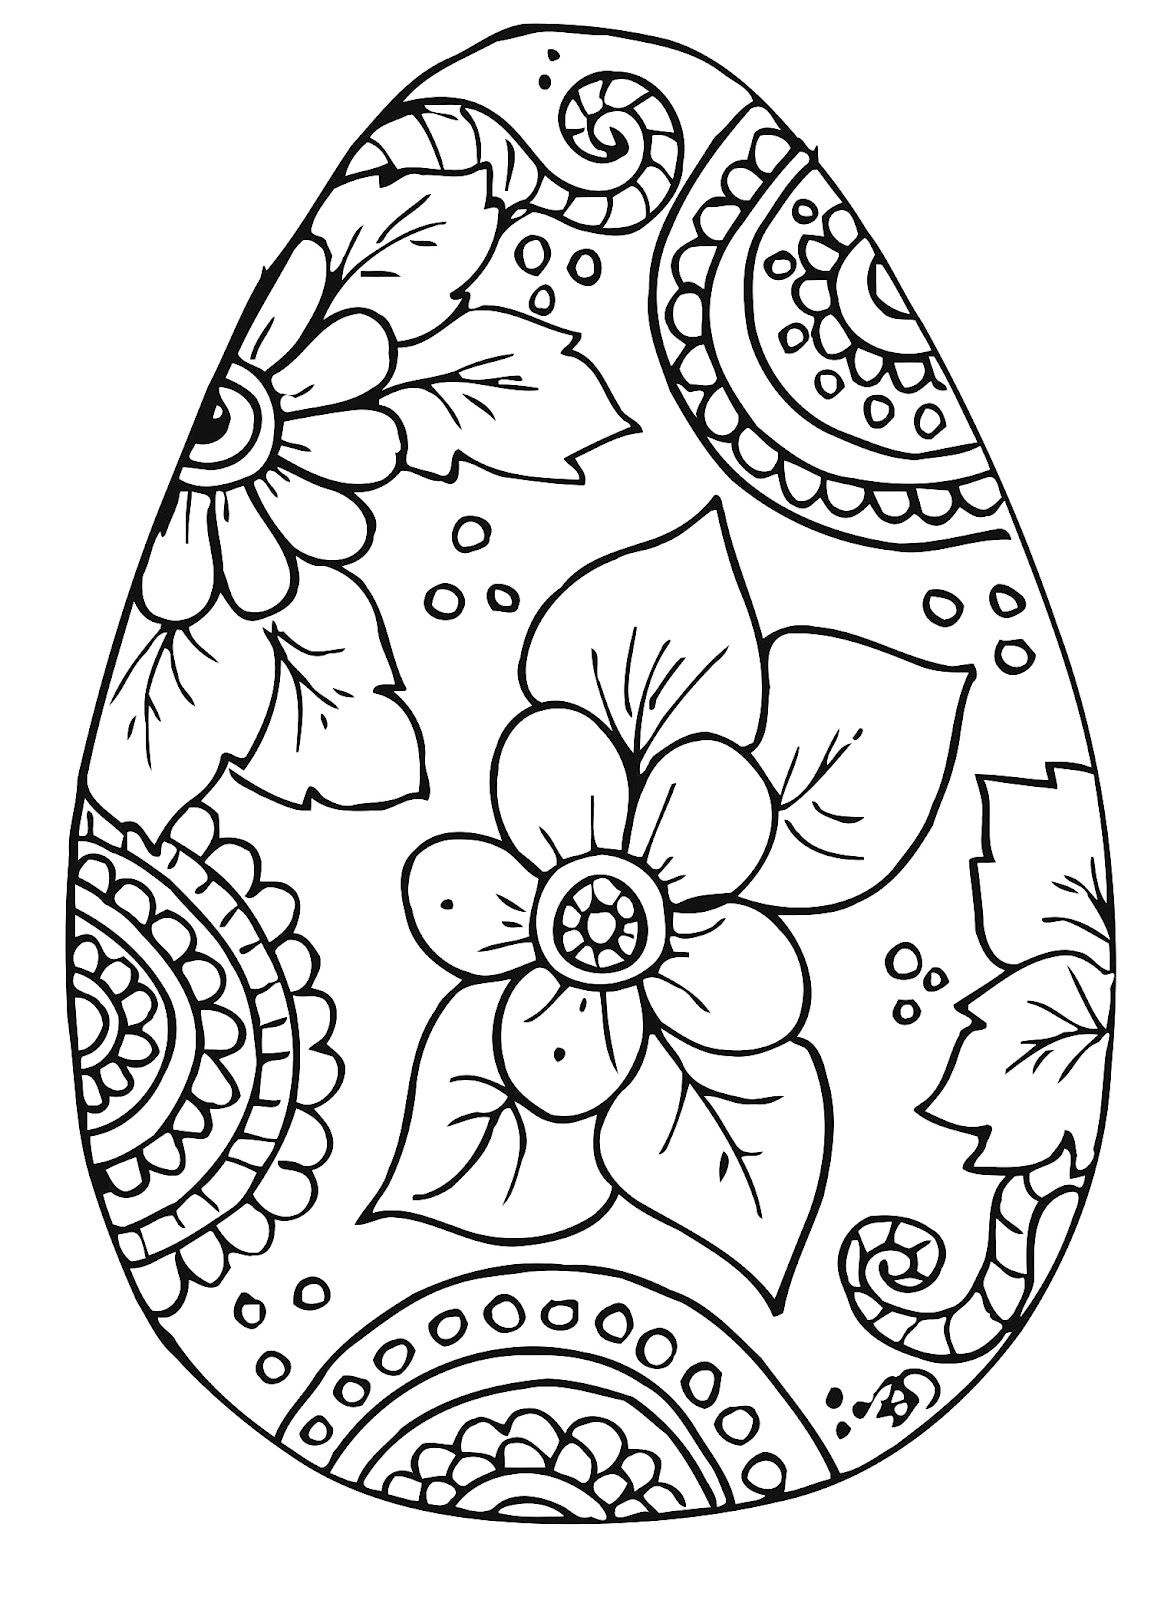 10 Cool Free Printable Easter Coloring Pages For Kids Who've Moved - Free Printable Easter Coloring Pages